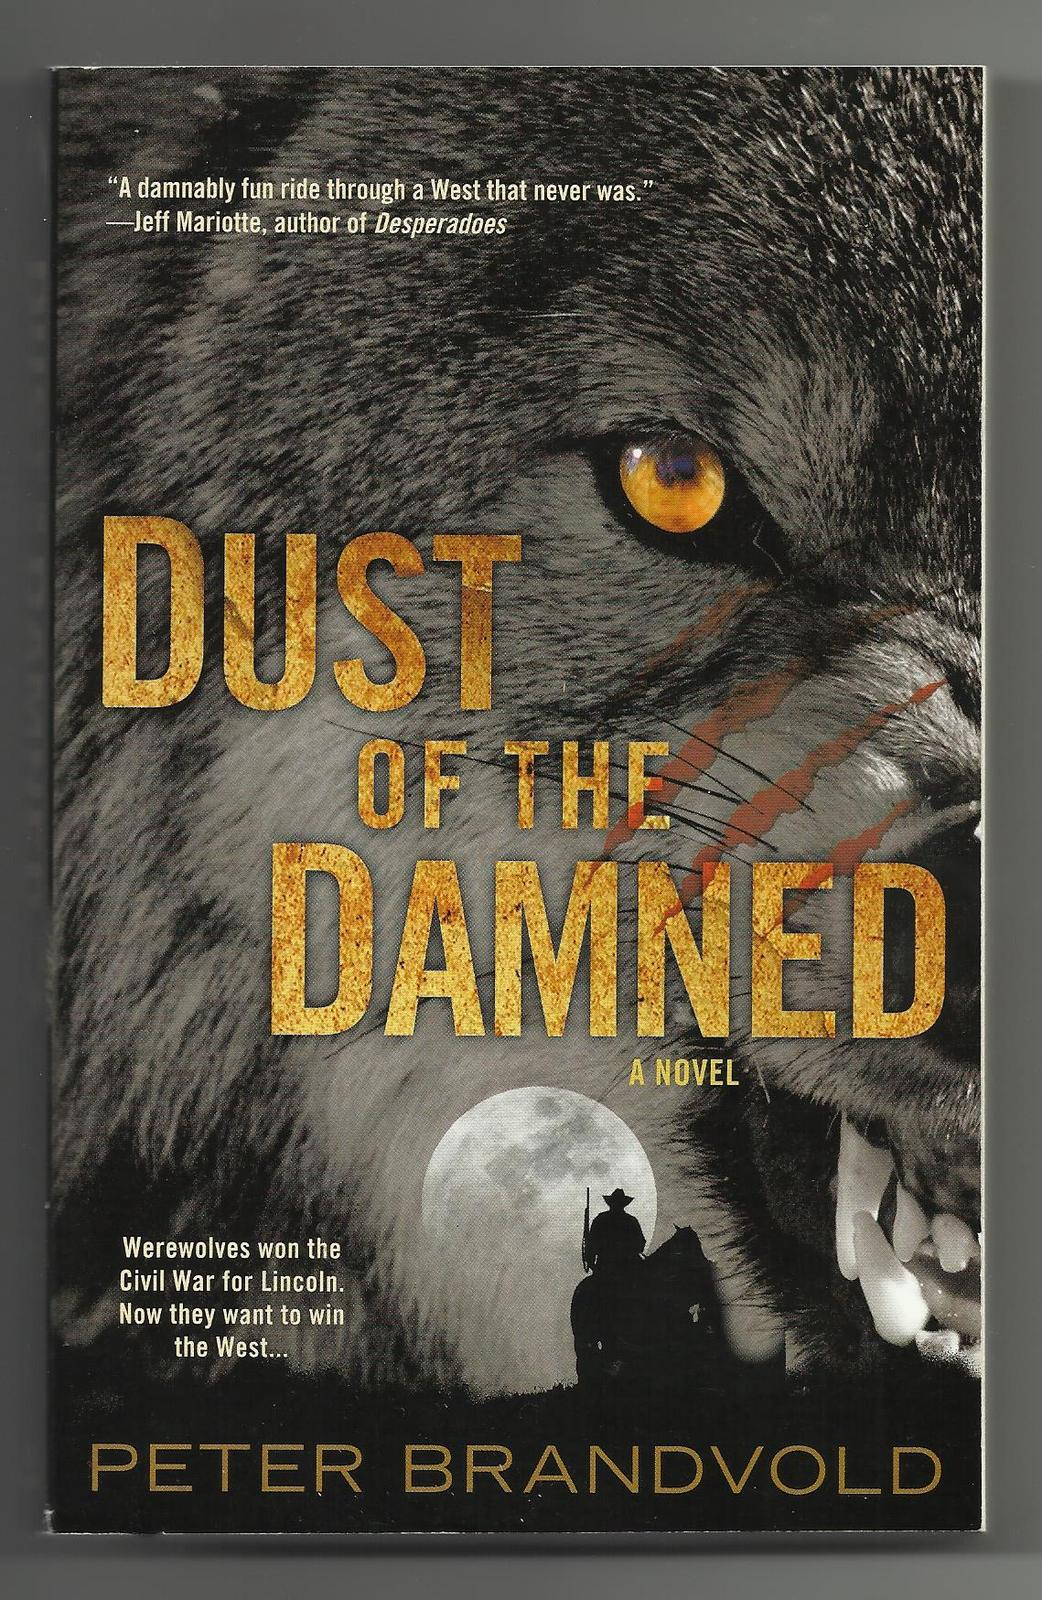 Dust of the Damned by Peter Brandvold Lincoln wins the Civil War with WEREWOLVES